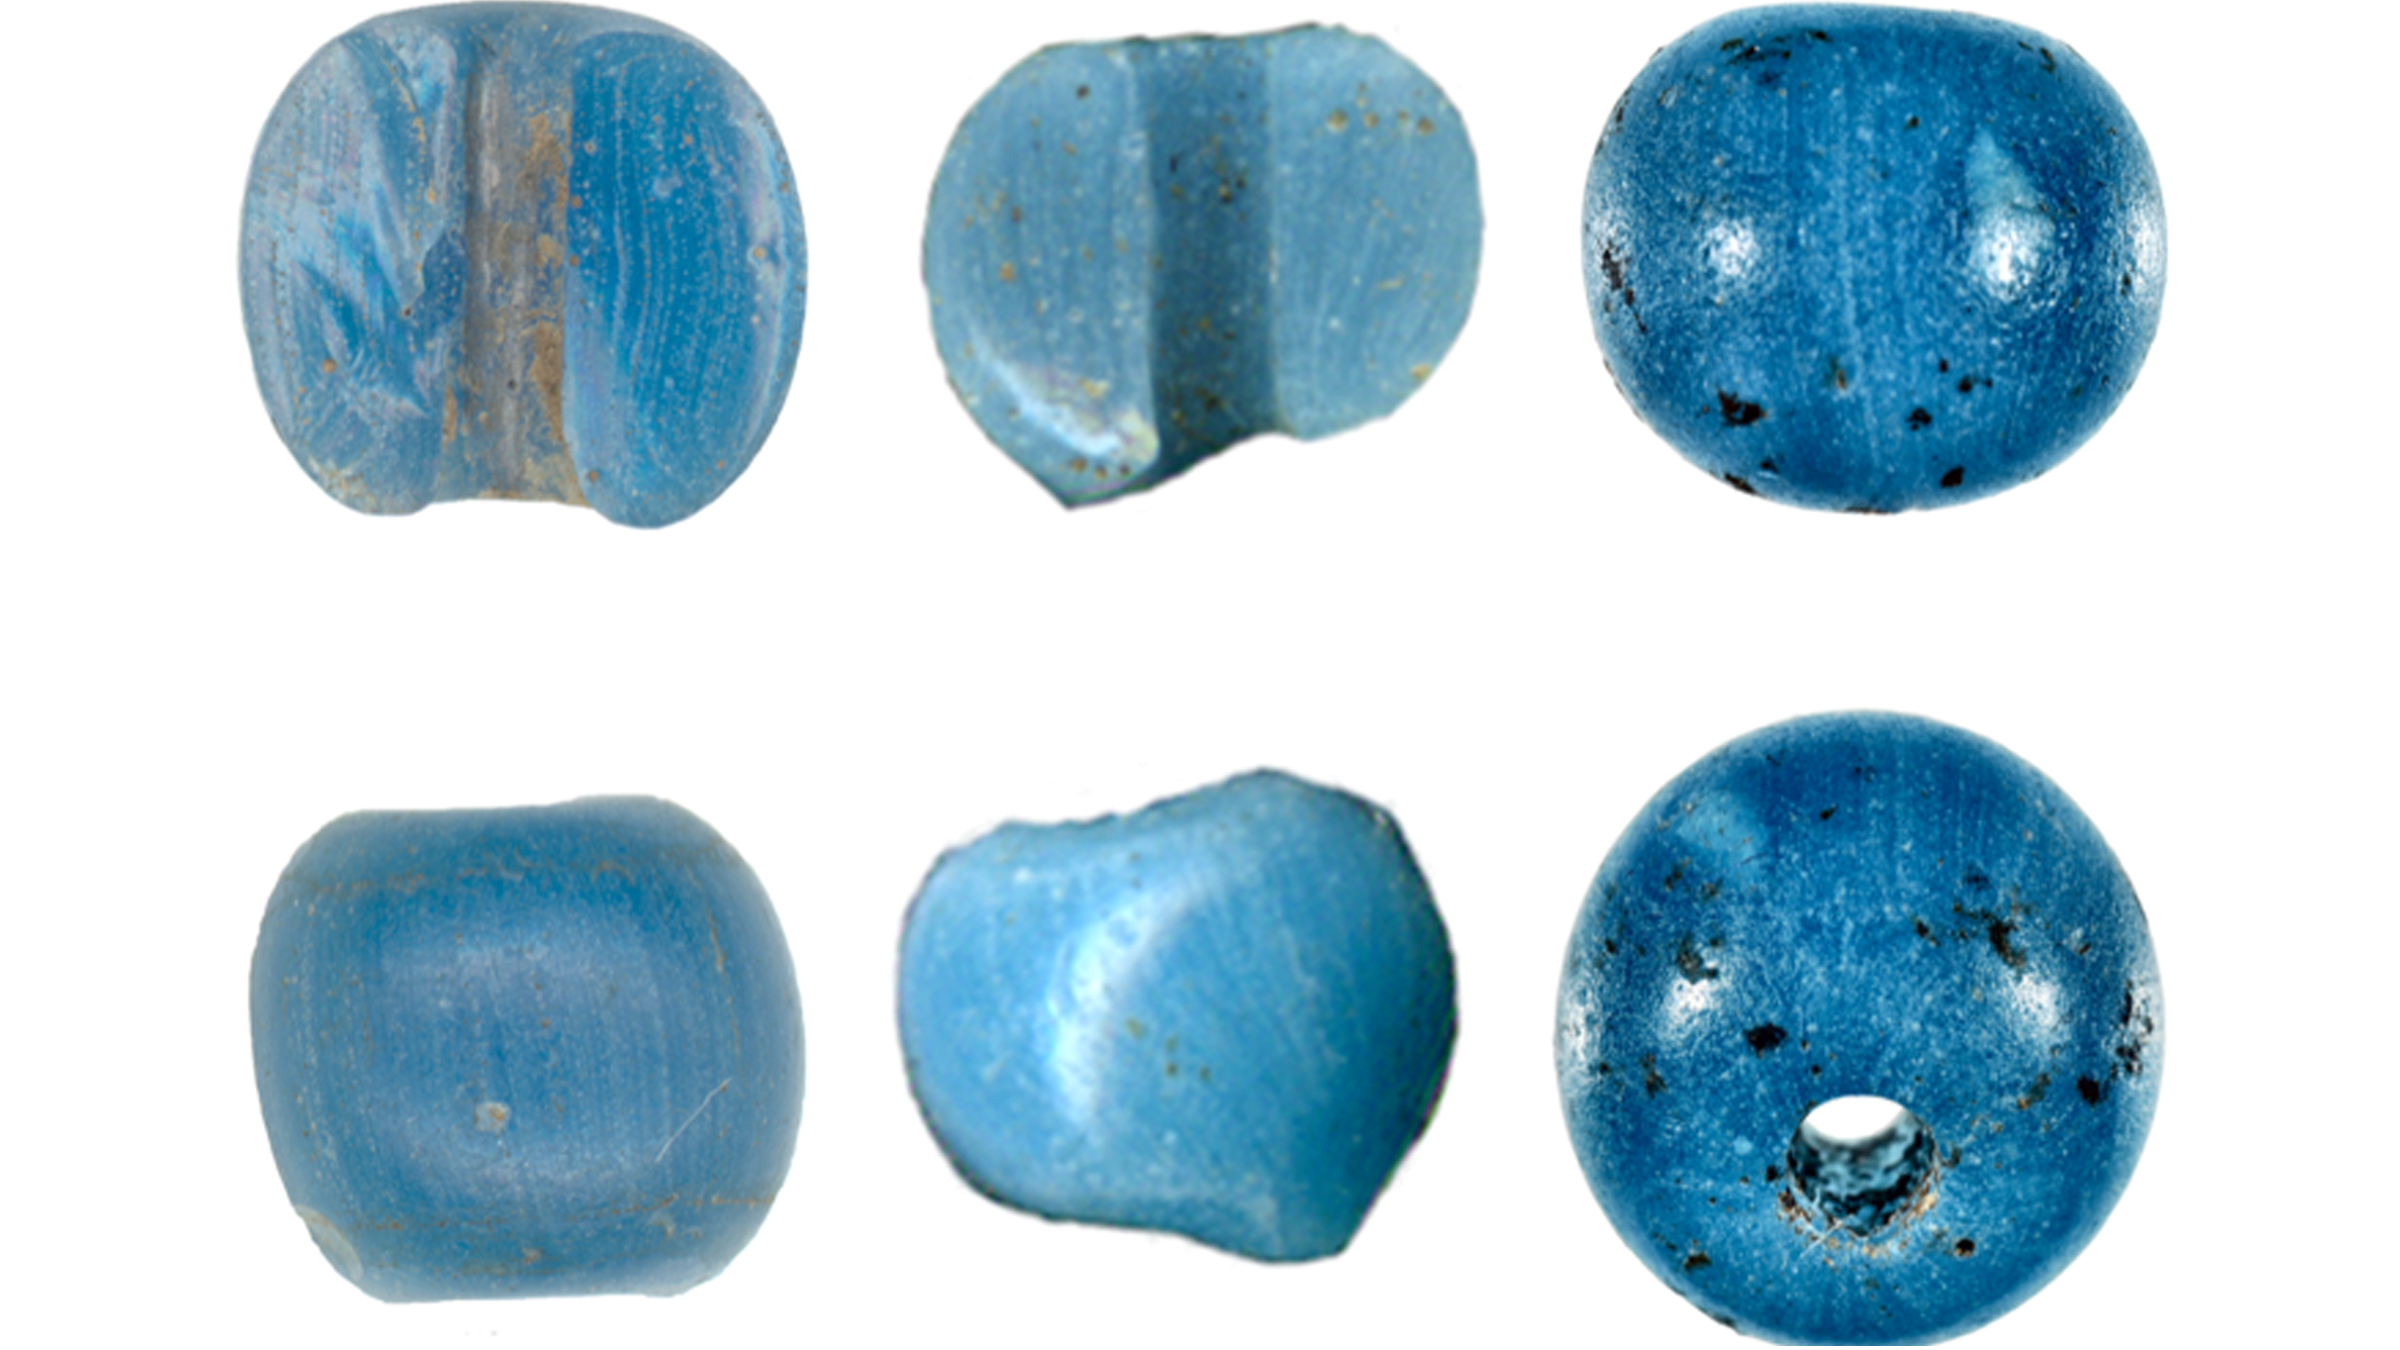 These three beads (each shown from two angles), were found by Lake Kaiyak (left), Kinyiksugvik Lake (center) and Punyik Point in Alaska.